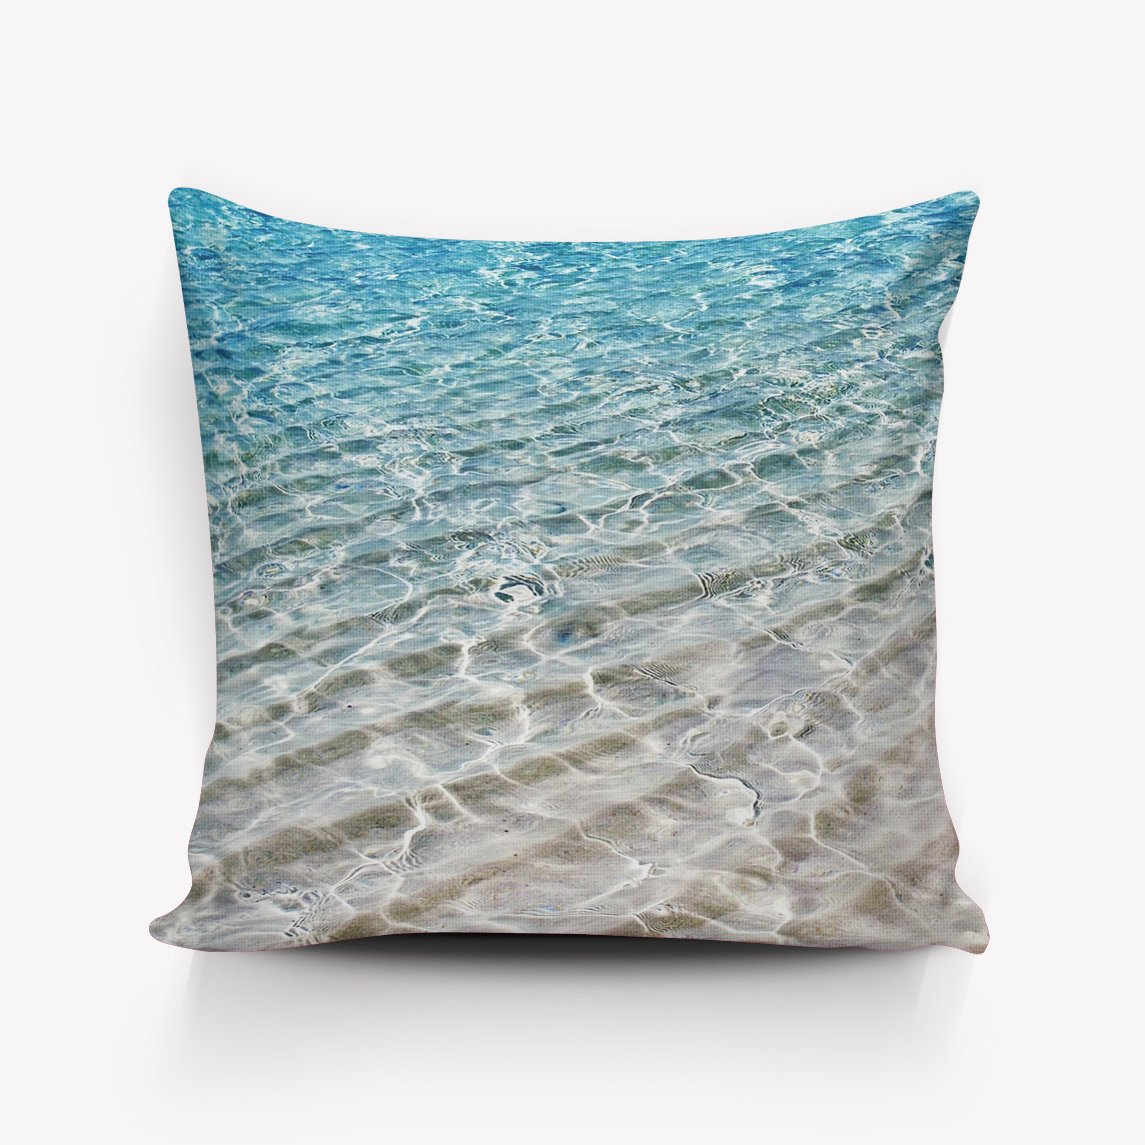 Soft Square Pillowcases Cute Beach Rippled Sea Water Home Decorative Cotton Linen Throw Pillow Covers 18x18inch Case Cushion Cover Decor for Couch Bed Chair By SUN-Shine